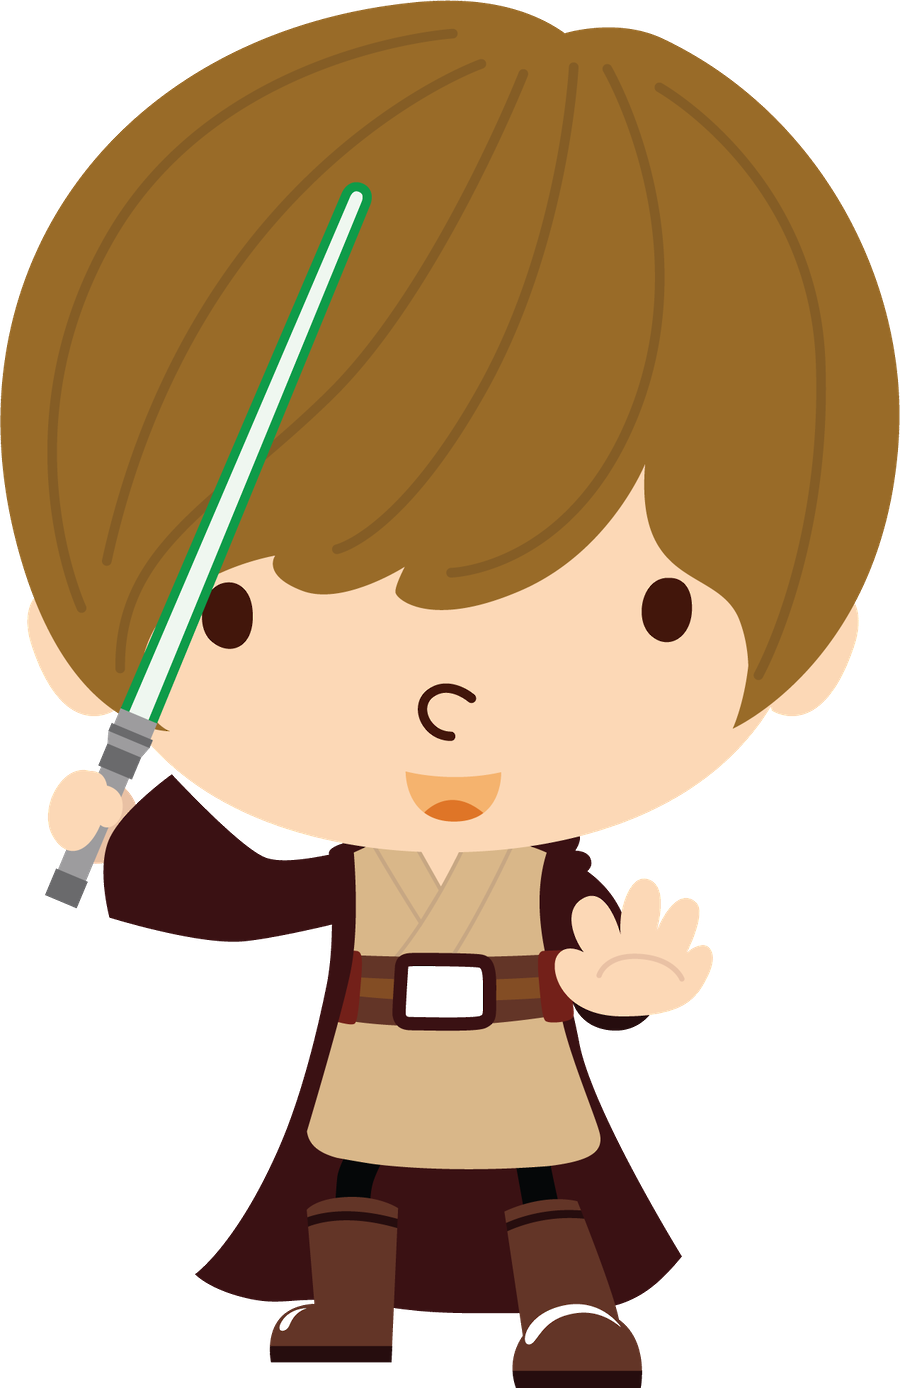 Plan clipart standard. Star wars minus already